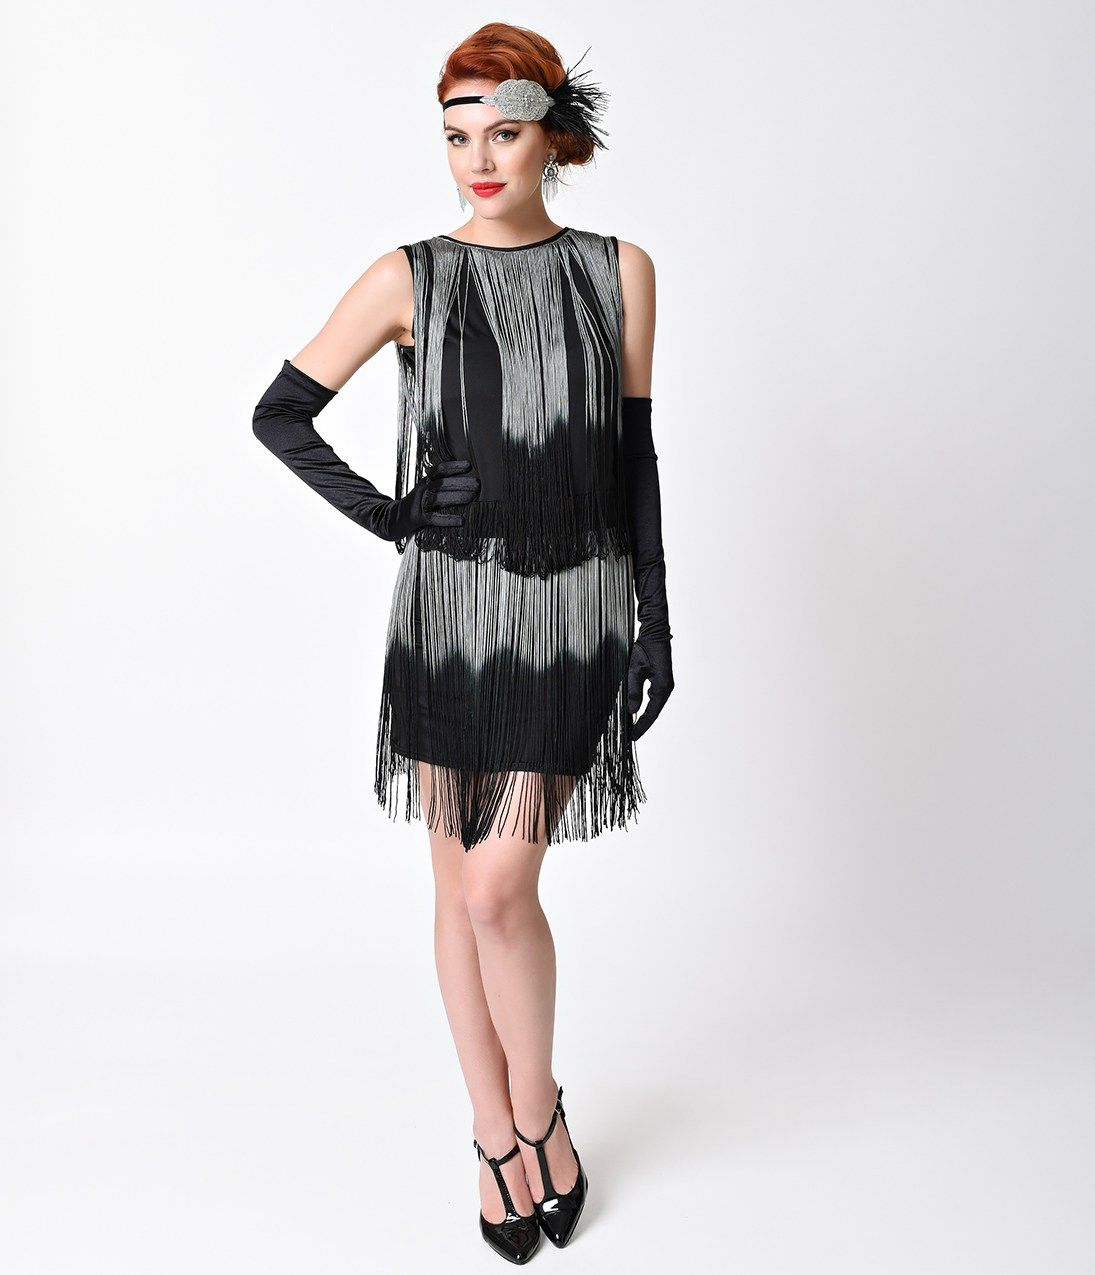 Pretty Great Gatsby Outfits : Admirable Great Gatsby Outfits ...